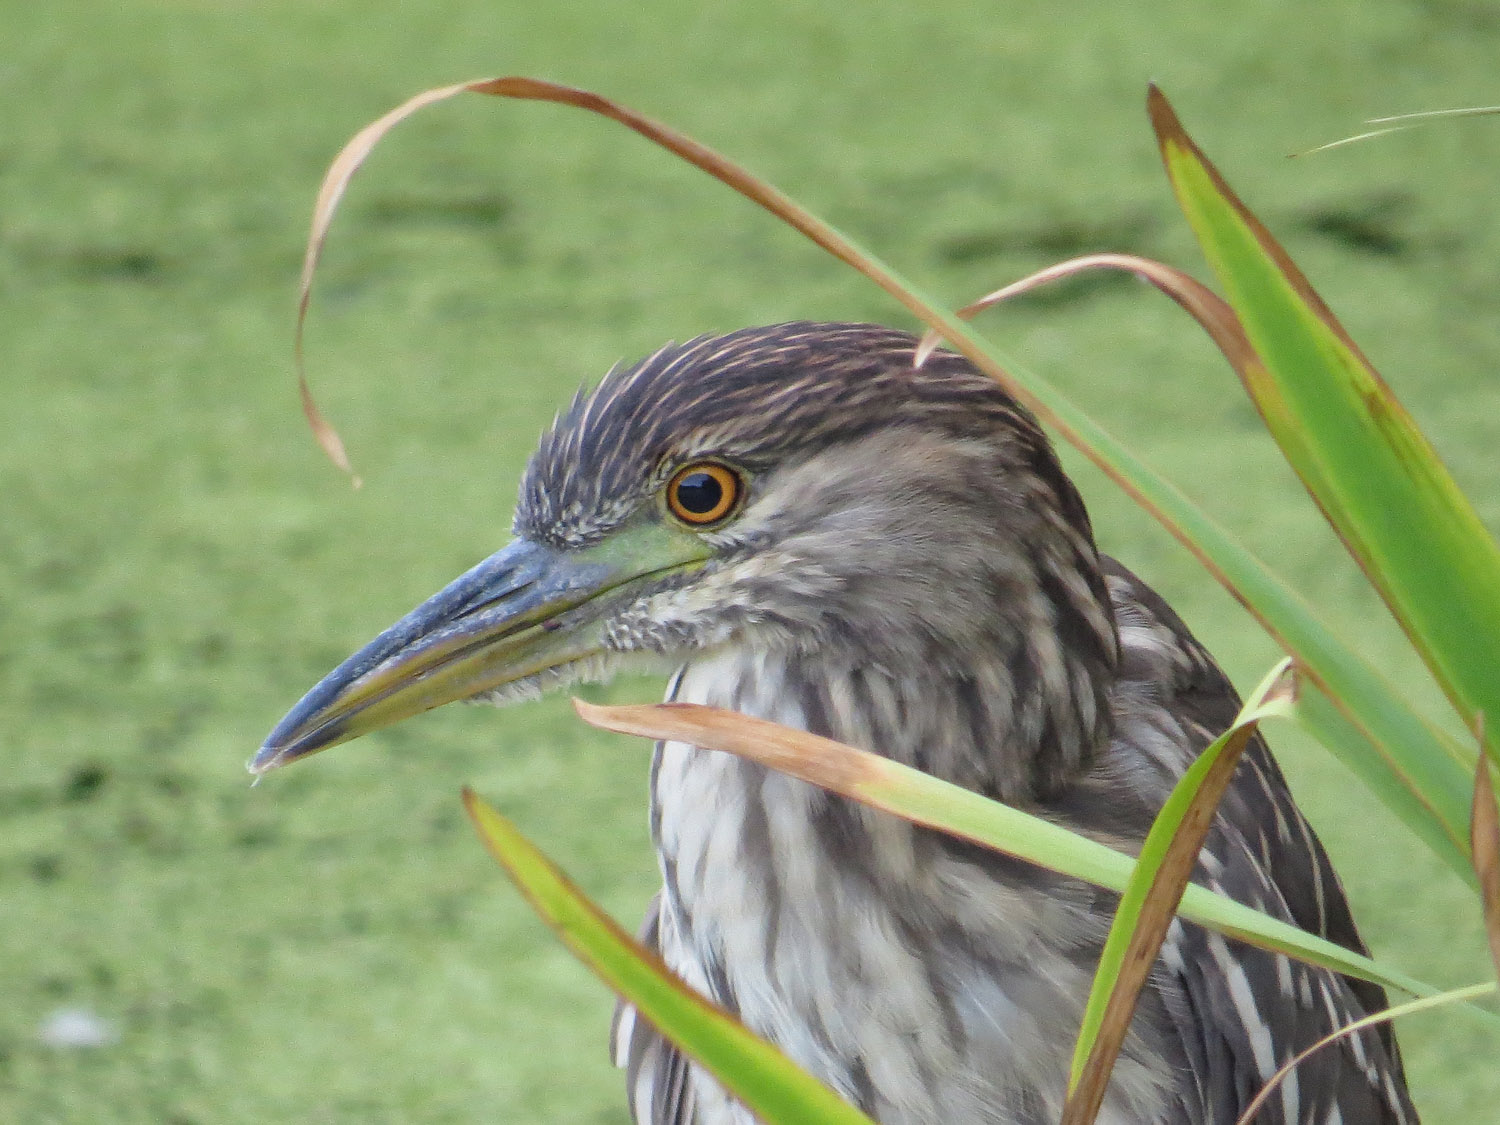 Young black-crowned night heron, Turtle Pond, August 2, 2016